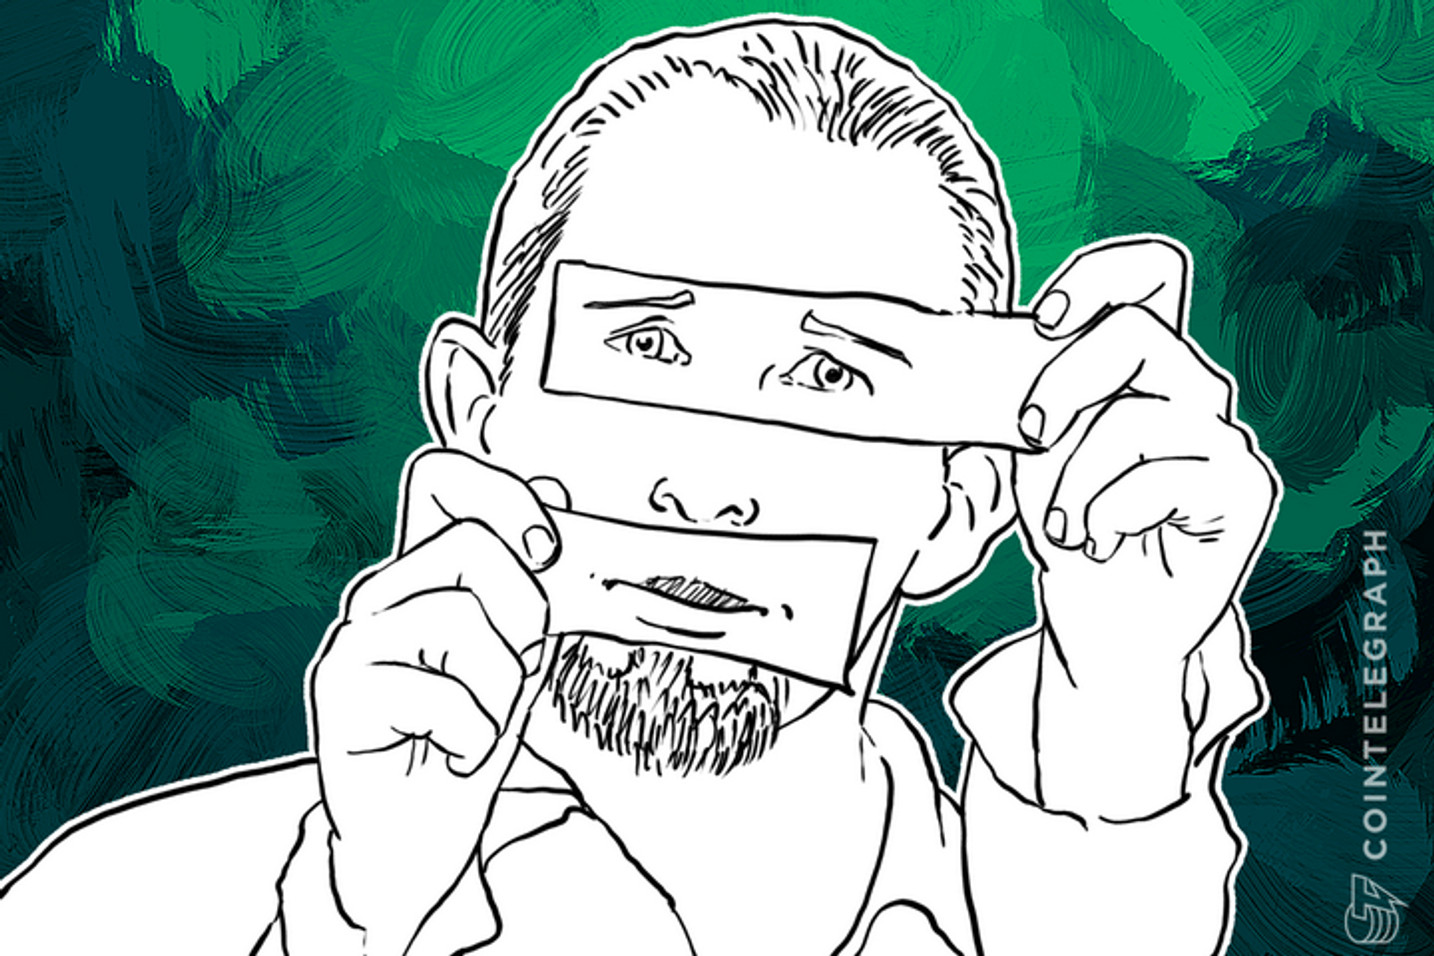 Convicted Silk Road Federal Agent Accused of Changing Identity to Escape Justice